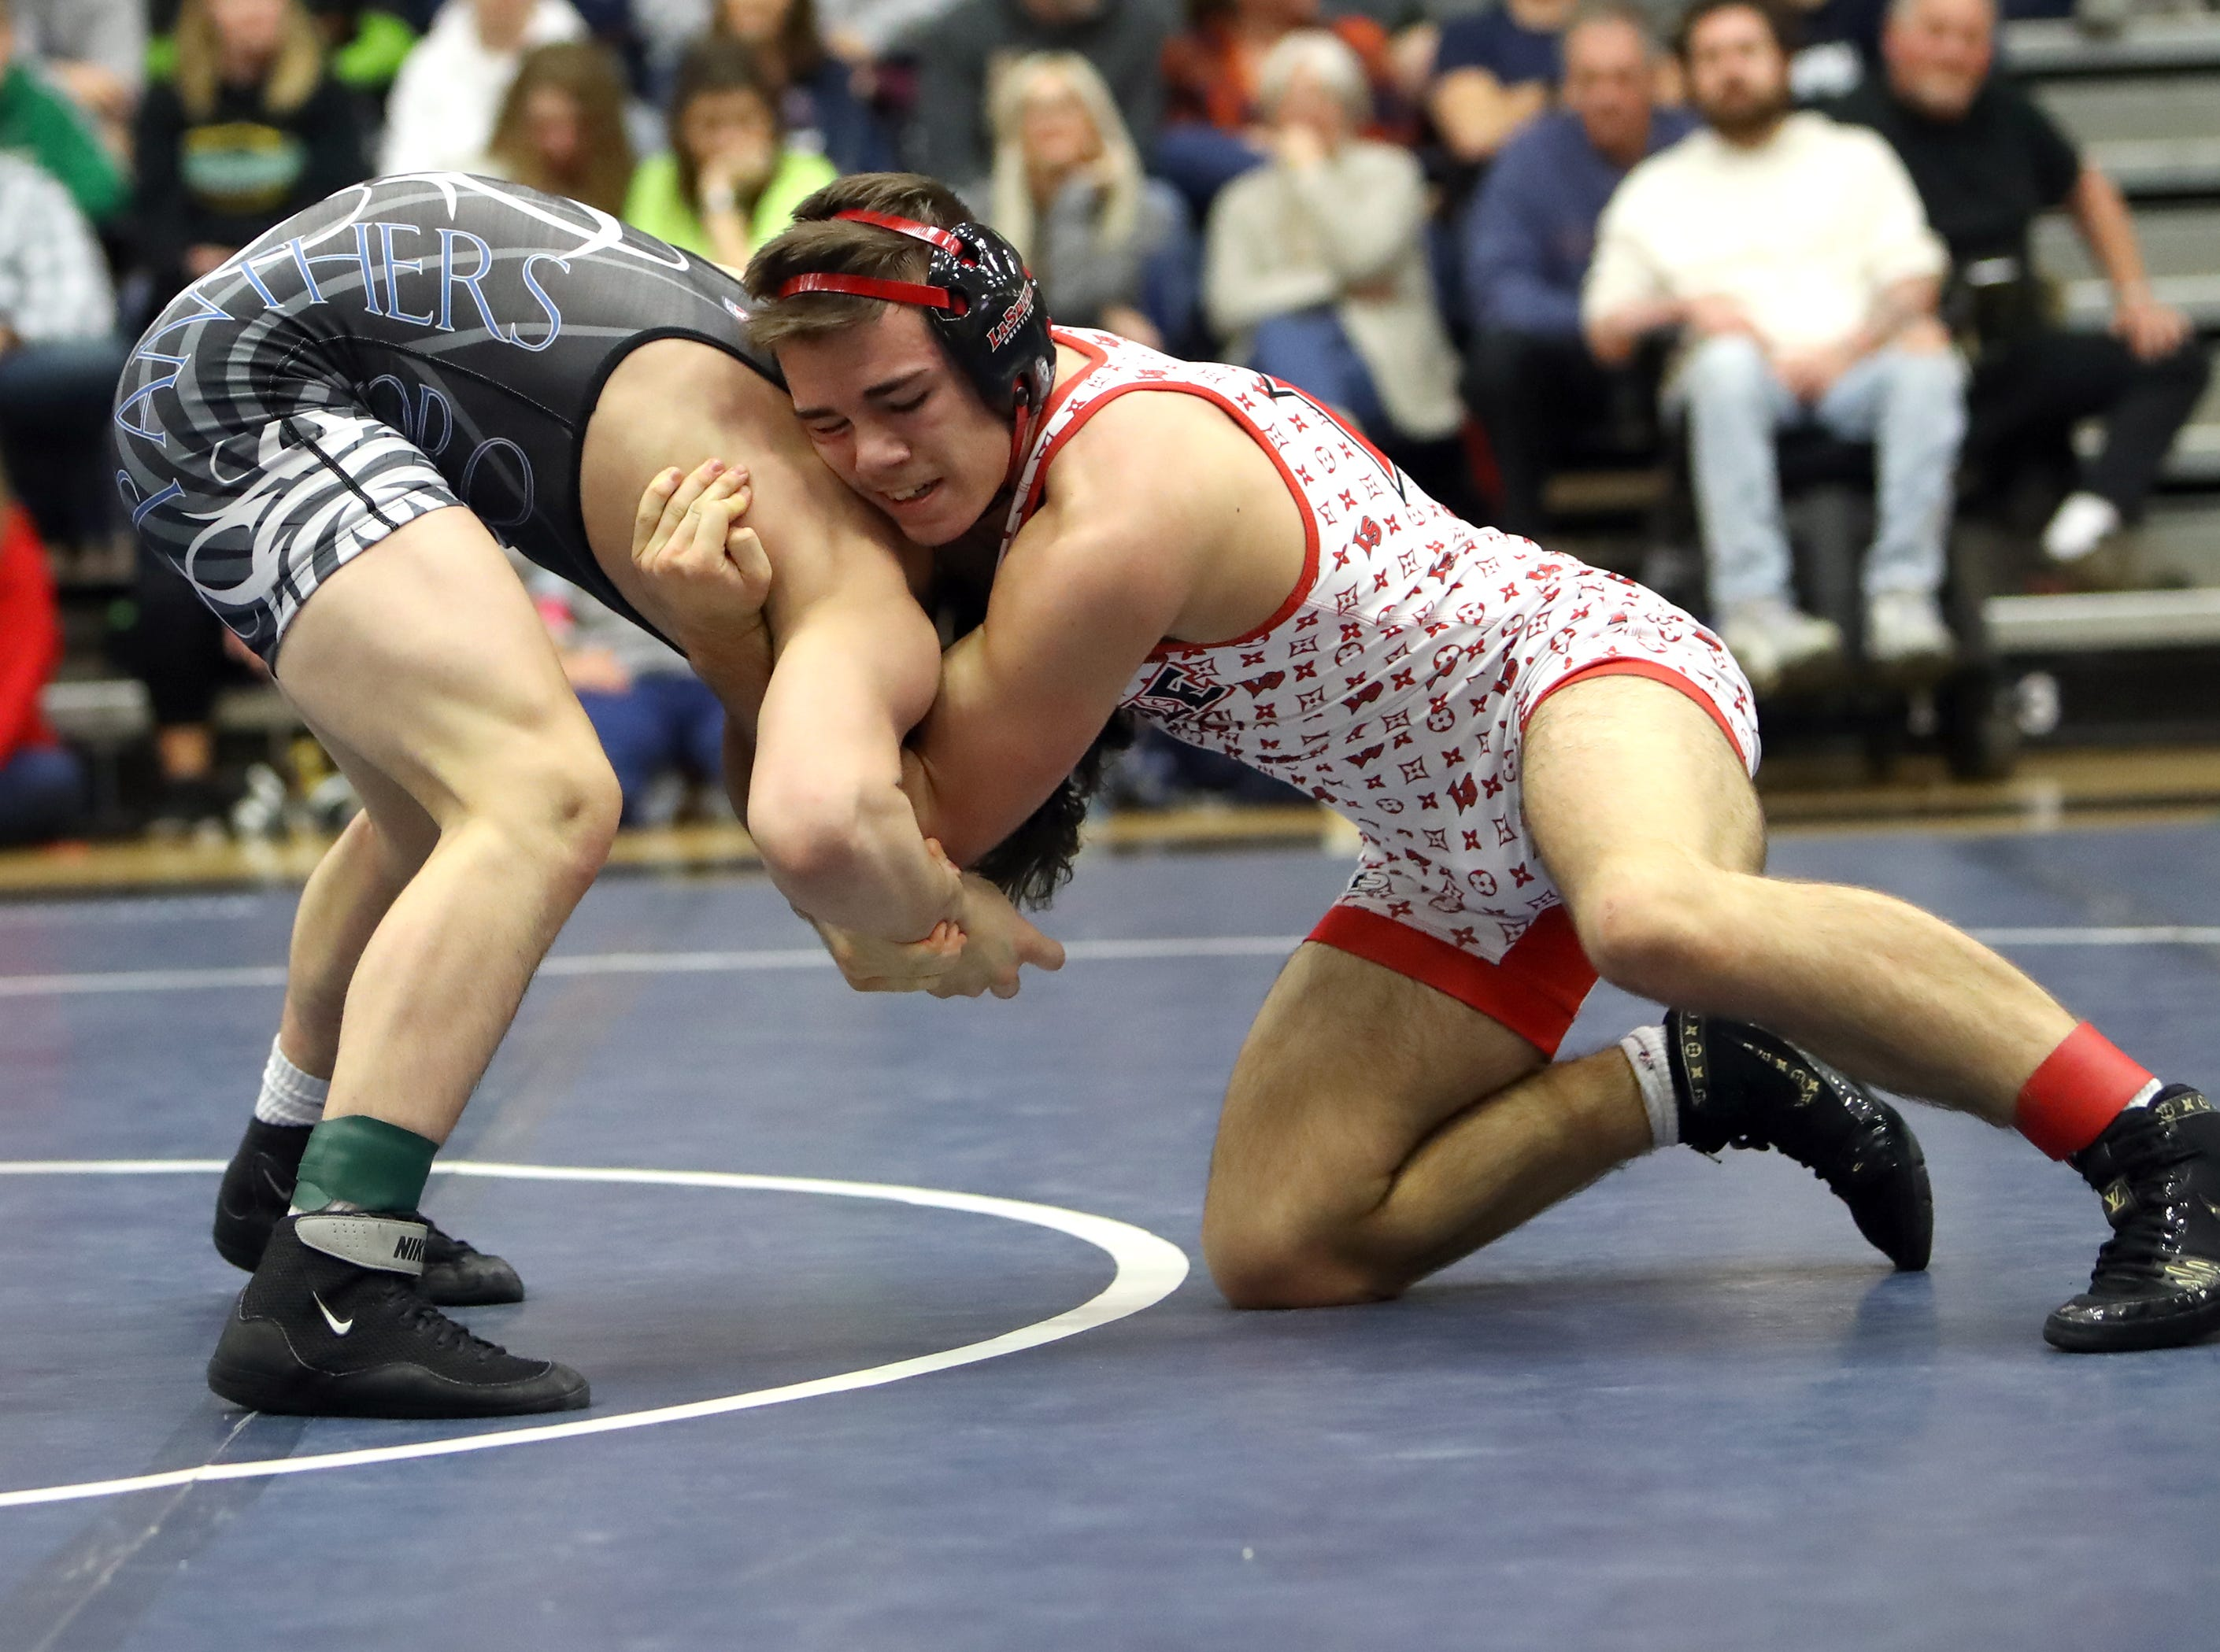 Jake Niffeneger from La Salle defeated Mason Kleinberg from Springboro for the 138 lbs. Championship at the OHSAA Division I Southwest district finals at Fairmont High School Trent Arena.